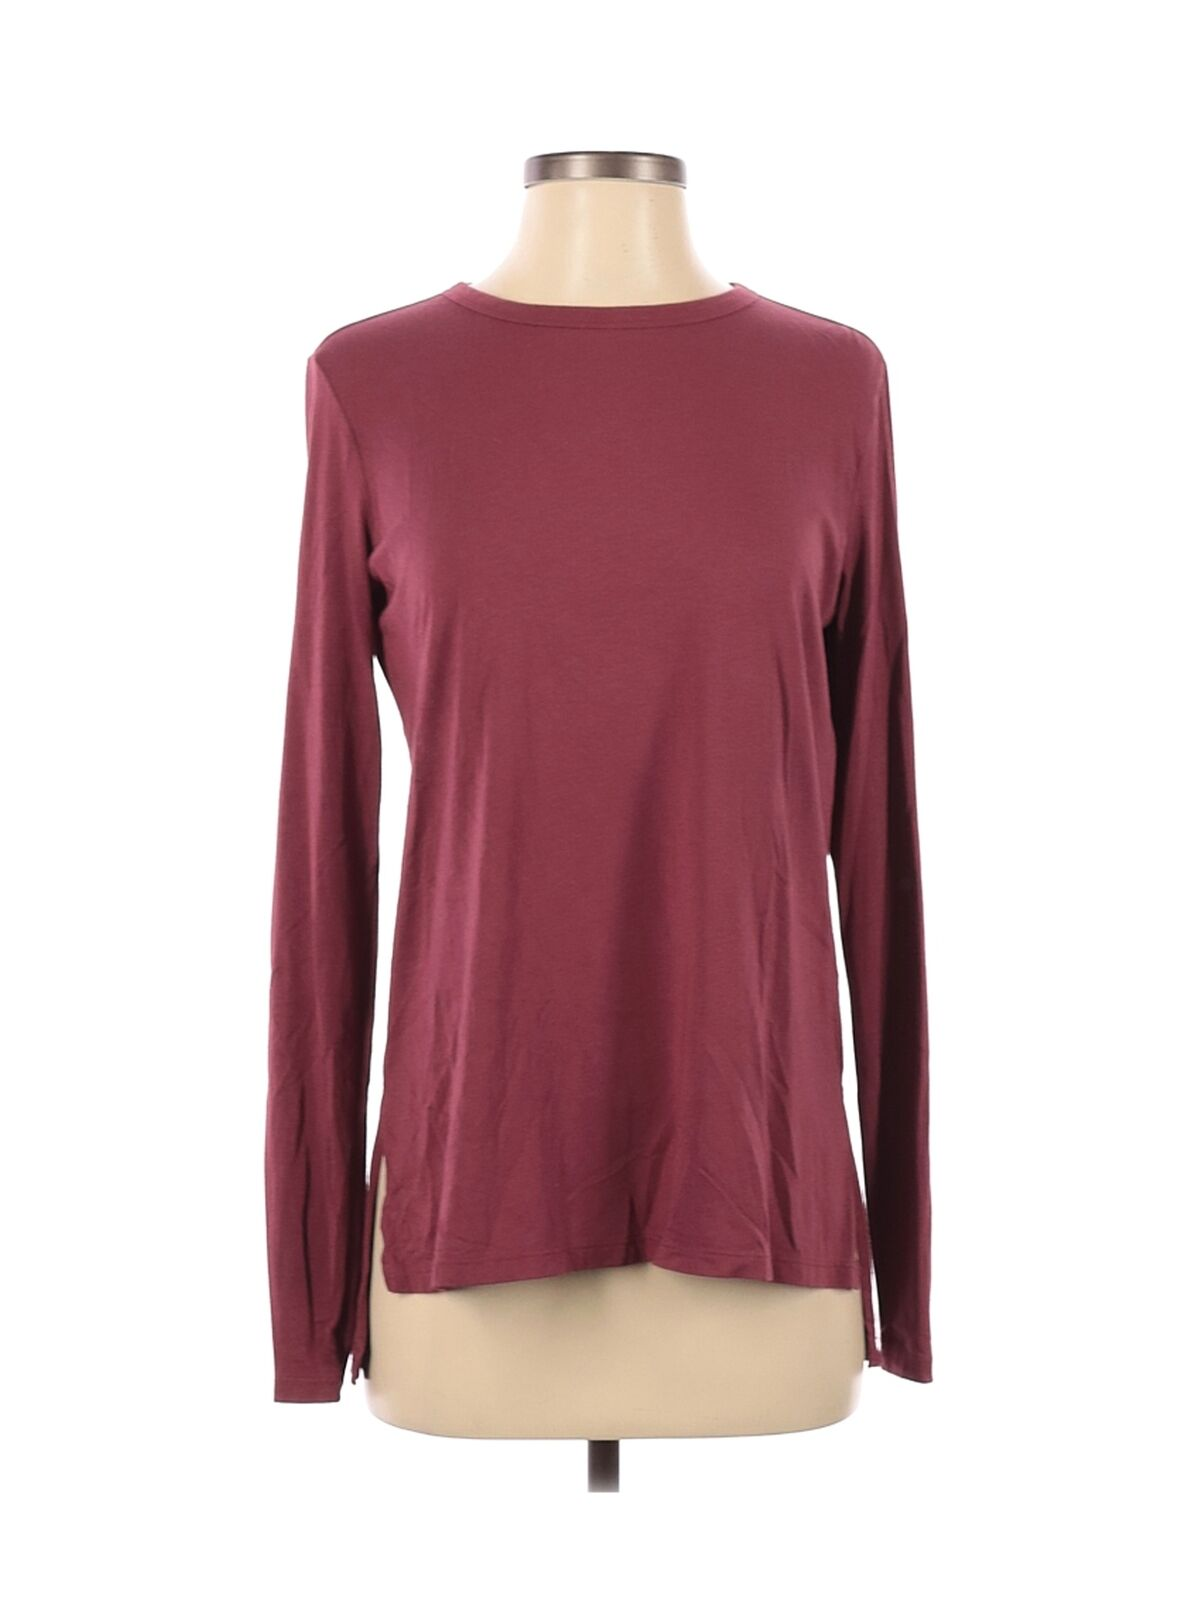 Theory Women Red Long Sleeve T-Shirt S - image 1